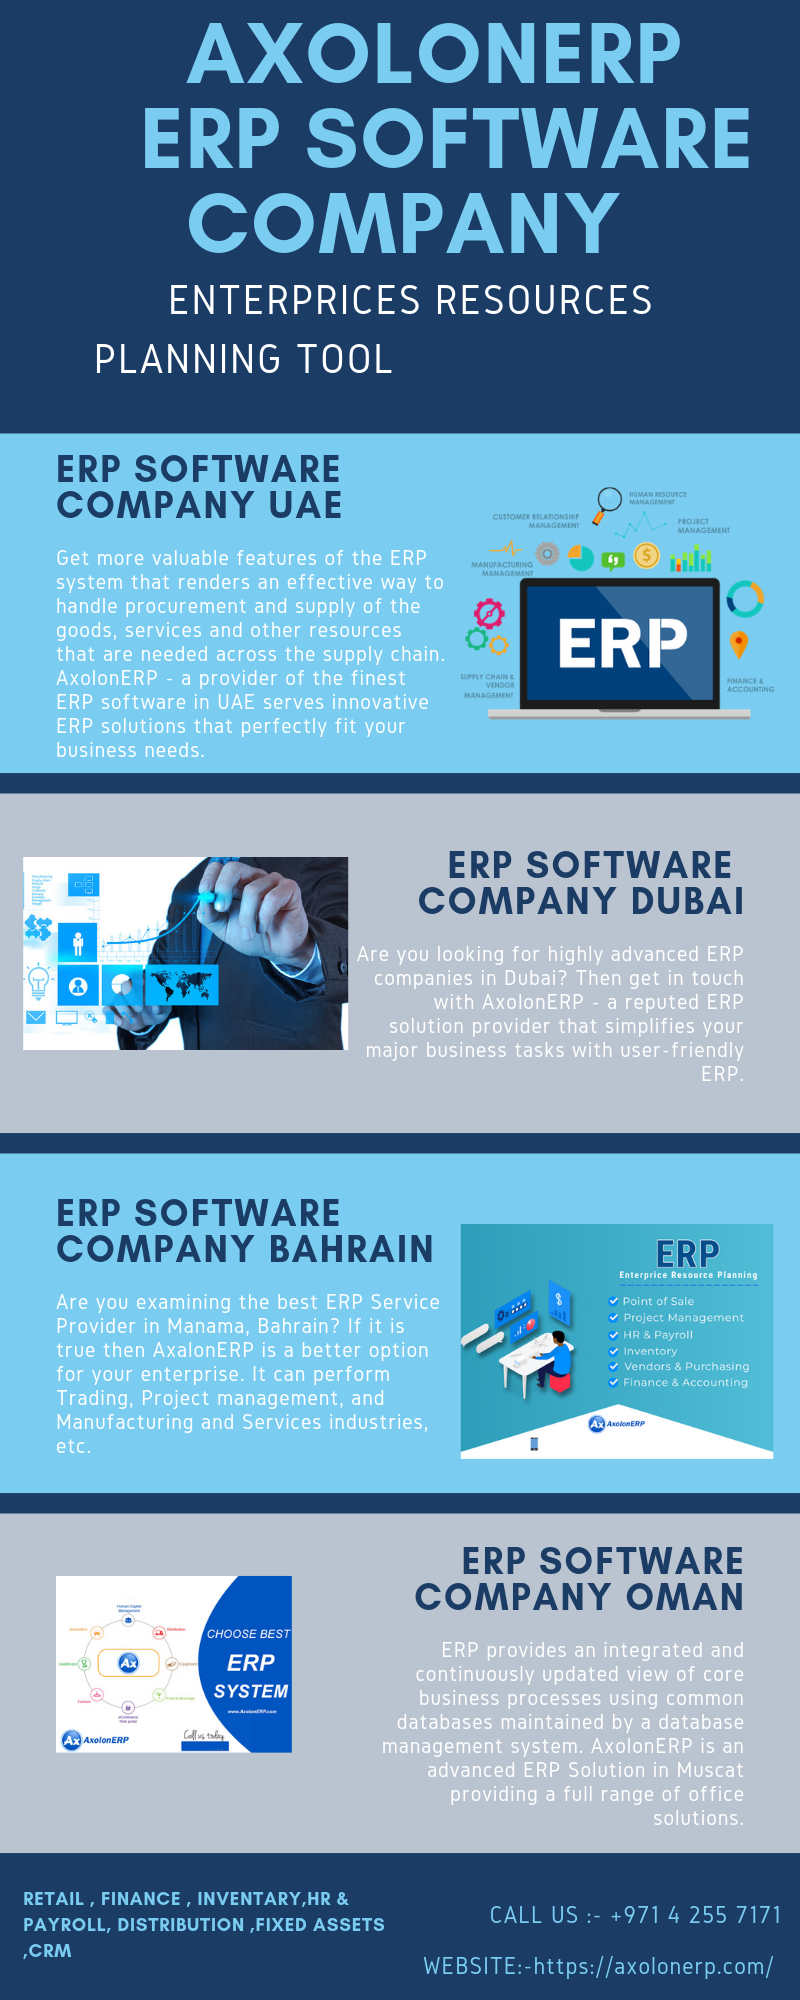 Do You Search For Appreciative Erp Software Company In Uae That Is